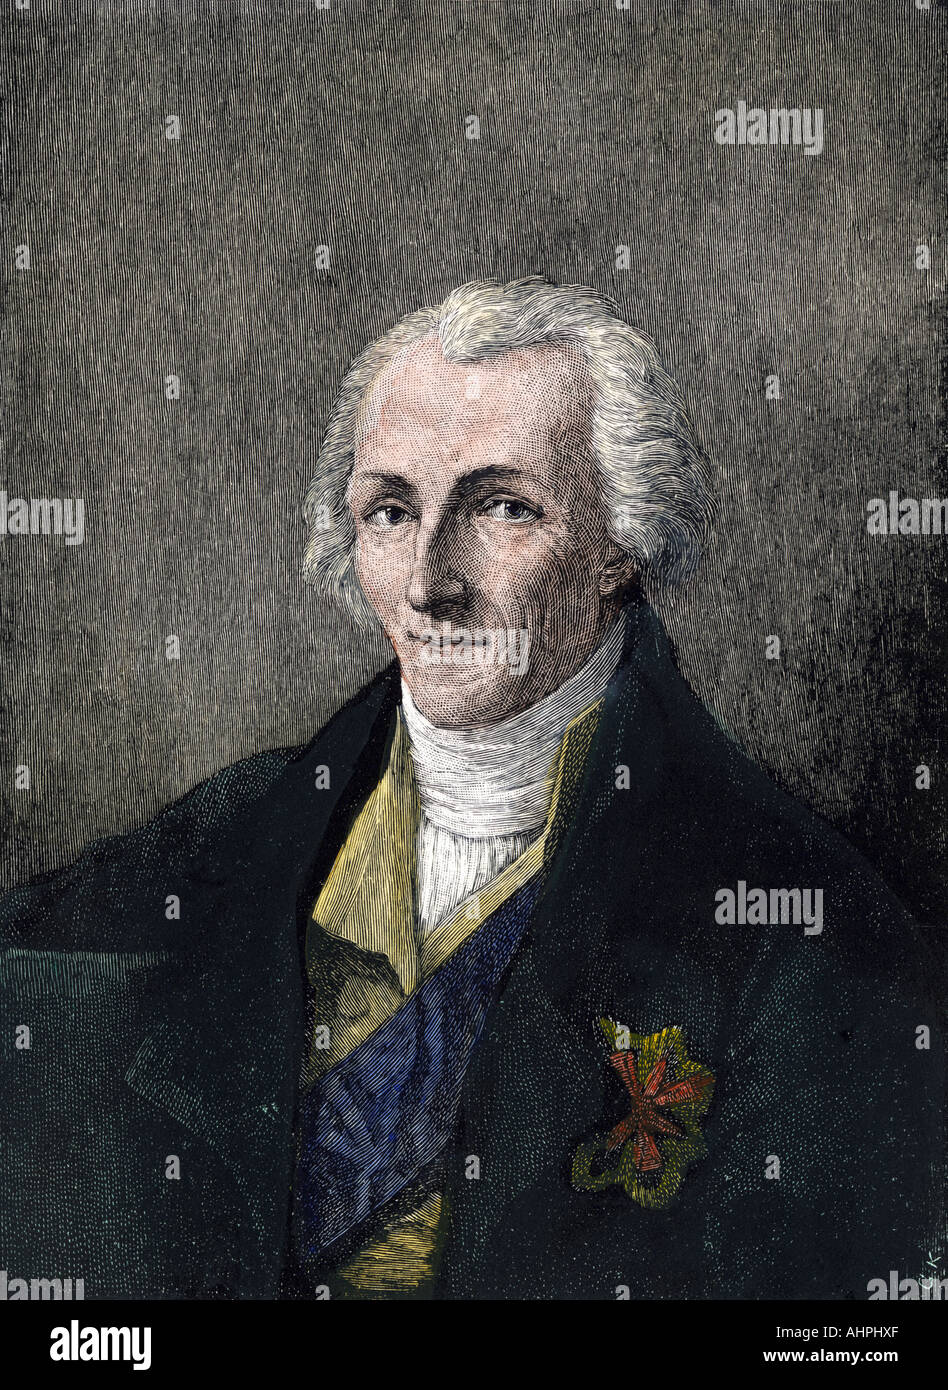 Benjamin Thompson known as Count von Rumford. Hand-colored woodcut - Stock Image